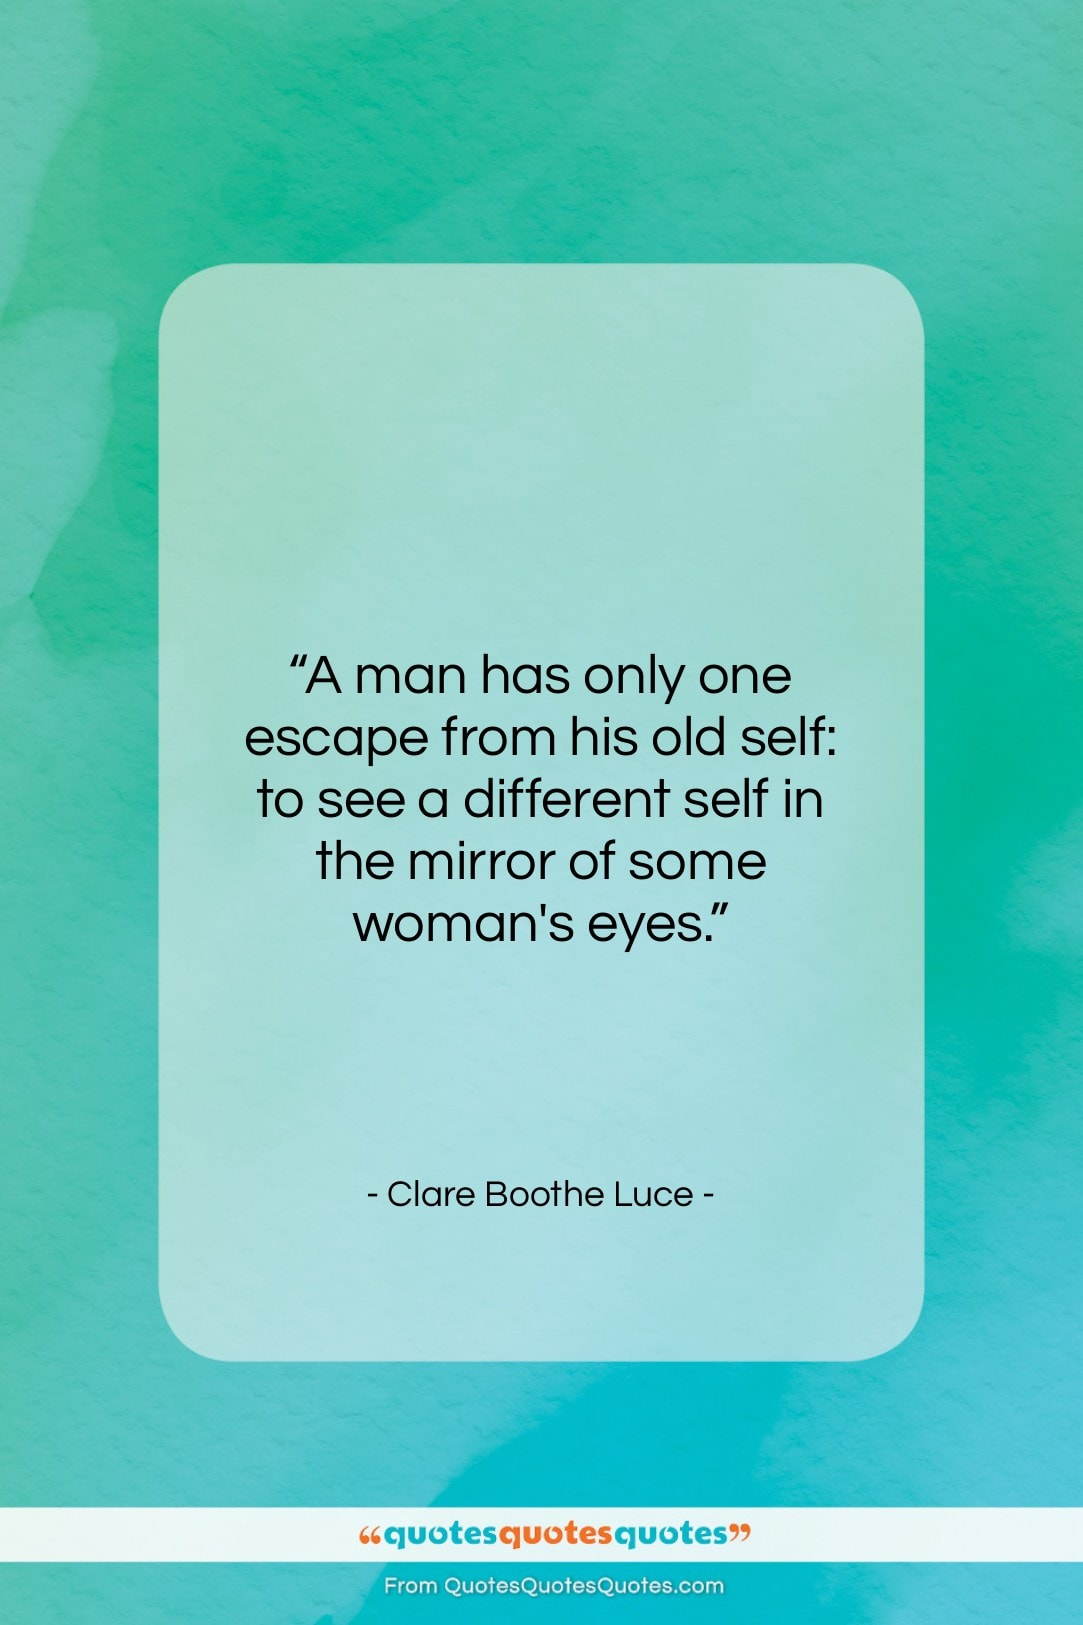 """Clare Boothe Luce quote: """"A man has only one escape from…""""- at QuotesQuotesQuotes.com"""